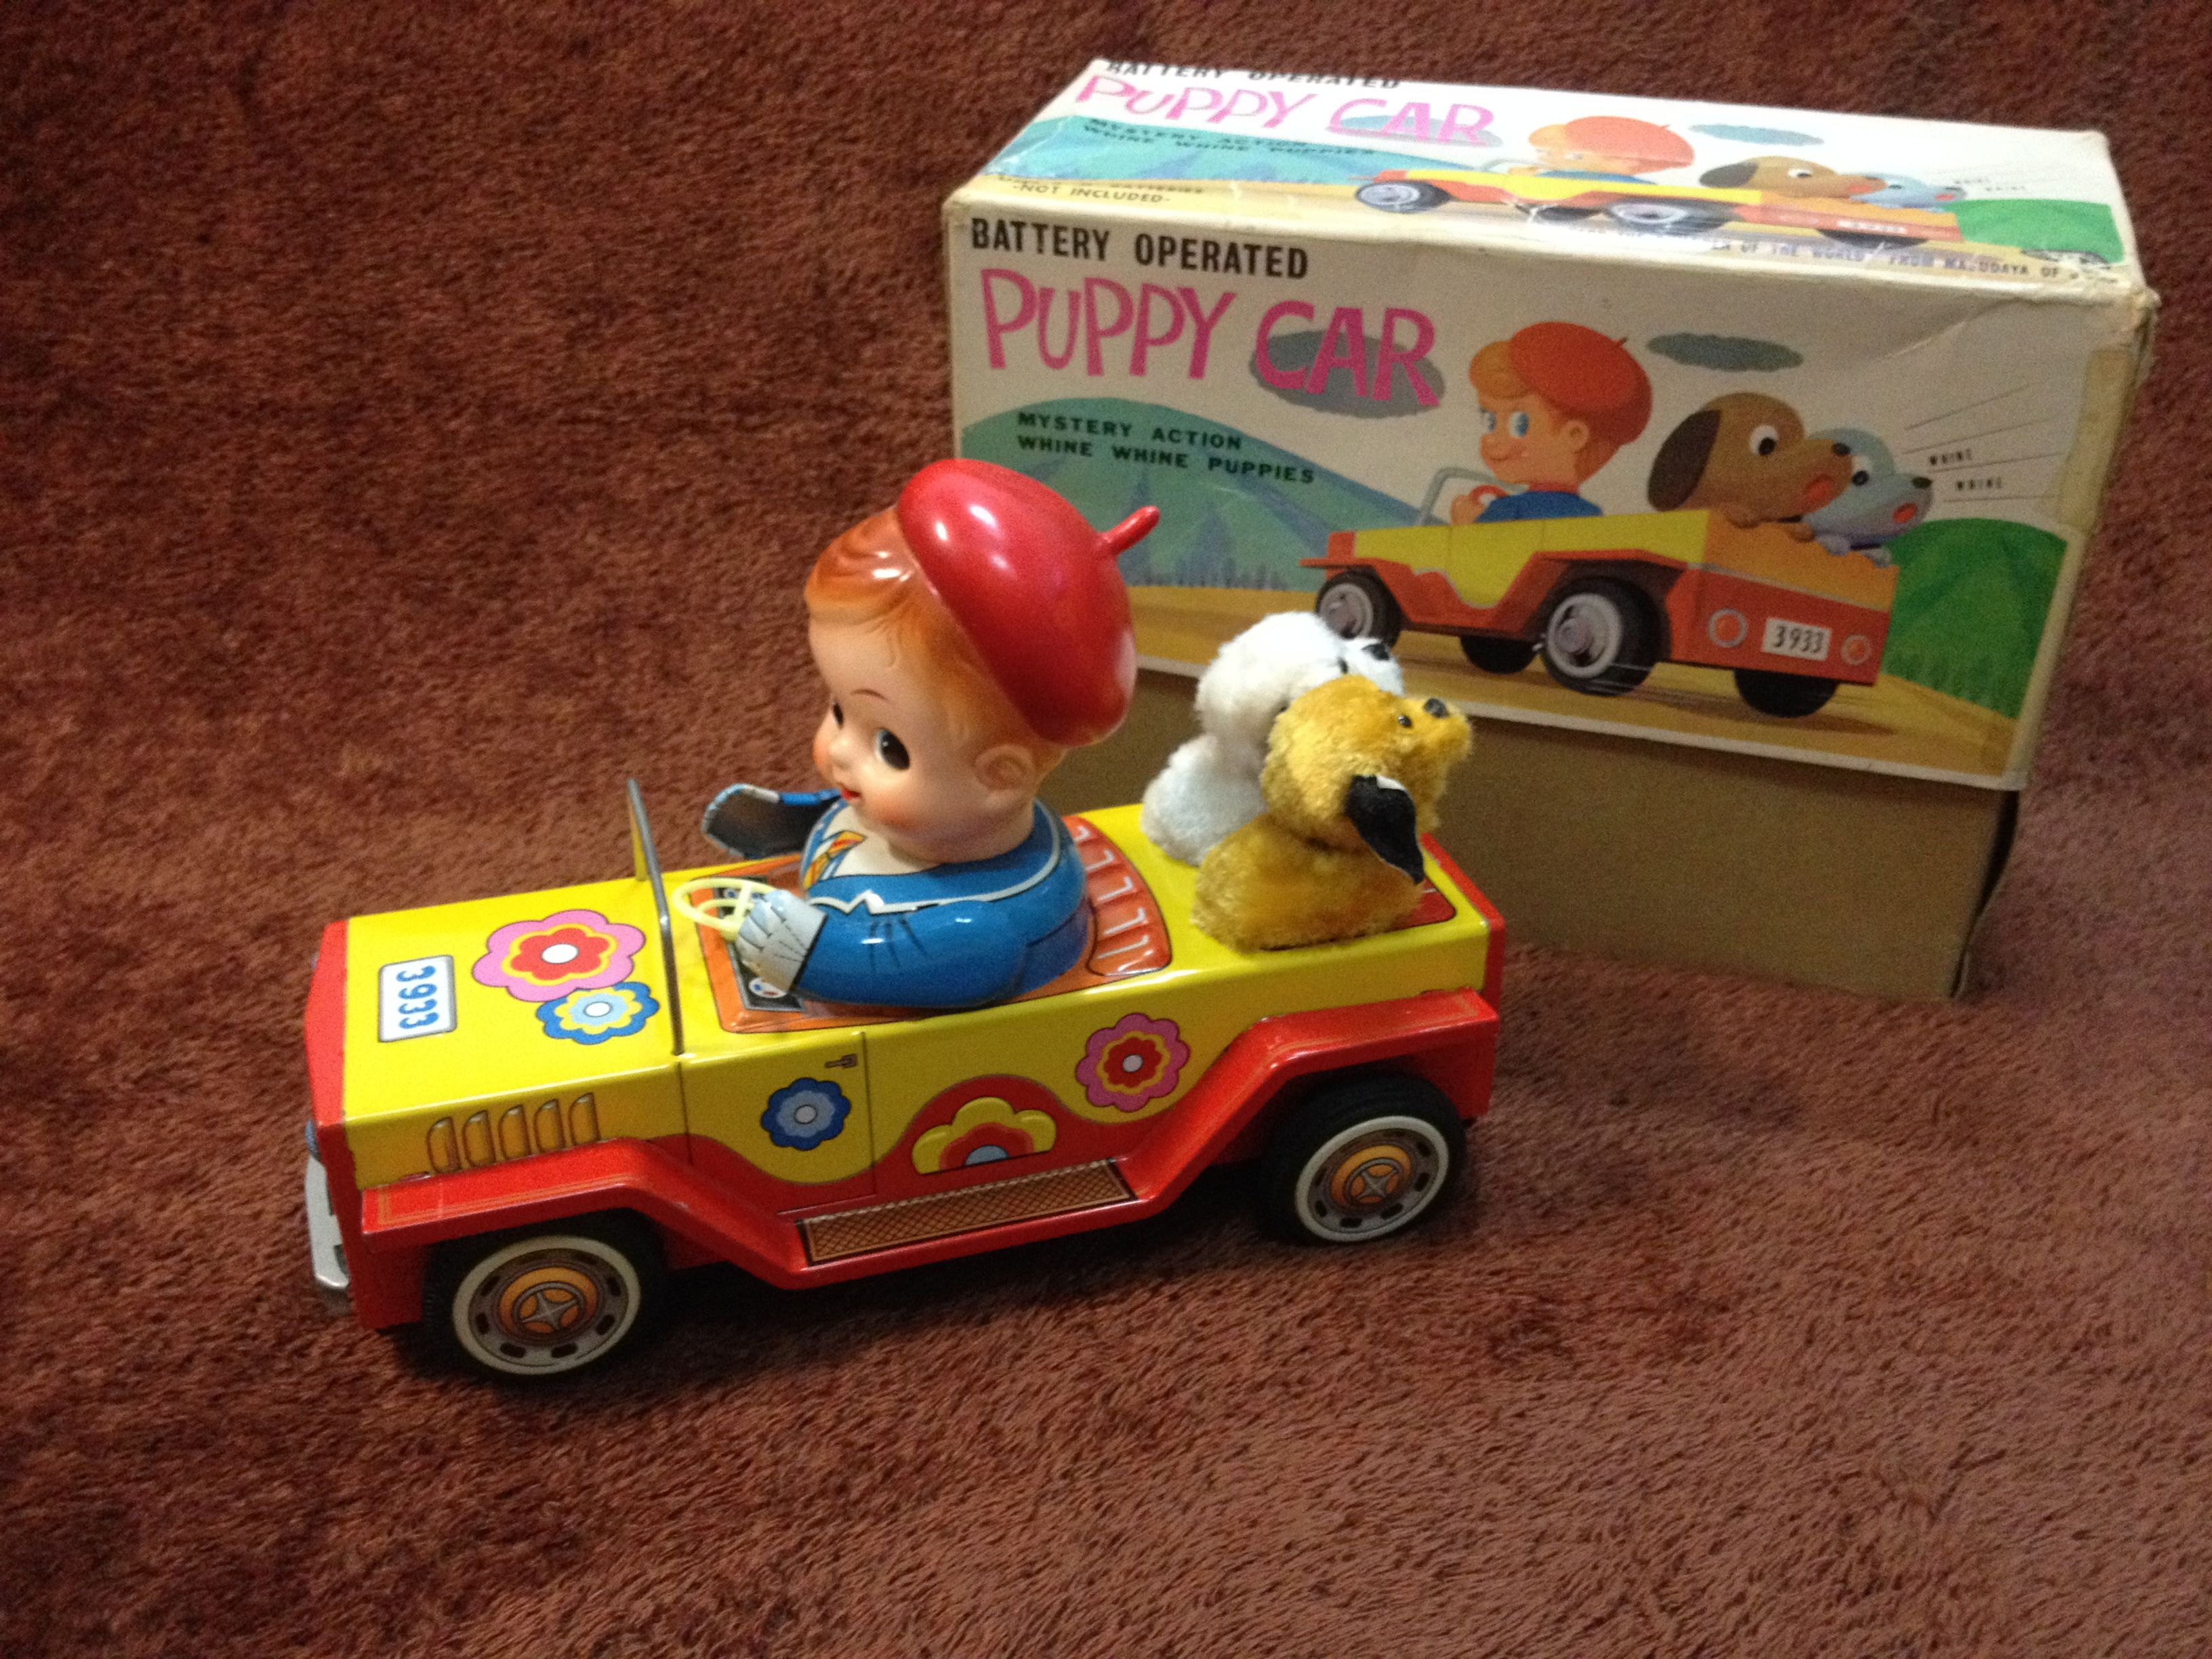 Toys car battery  Masudaya Puppy Car Battery Operated Tin Toy from s  Old Toys